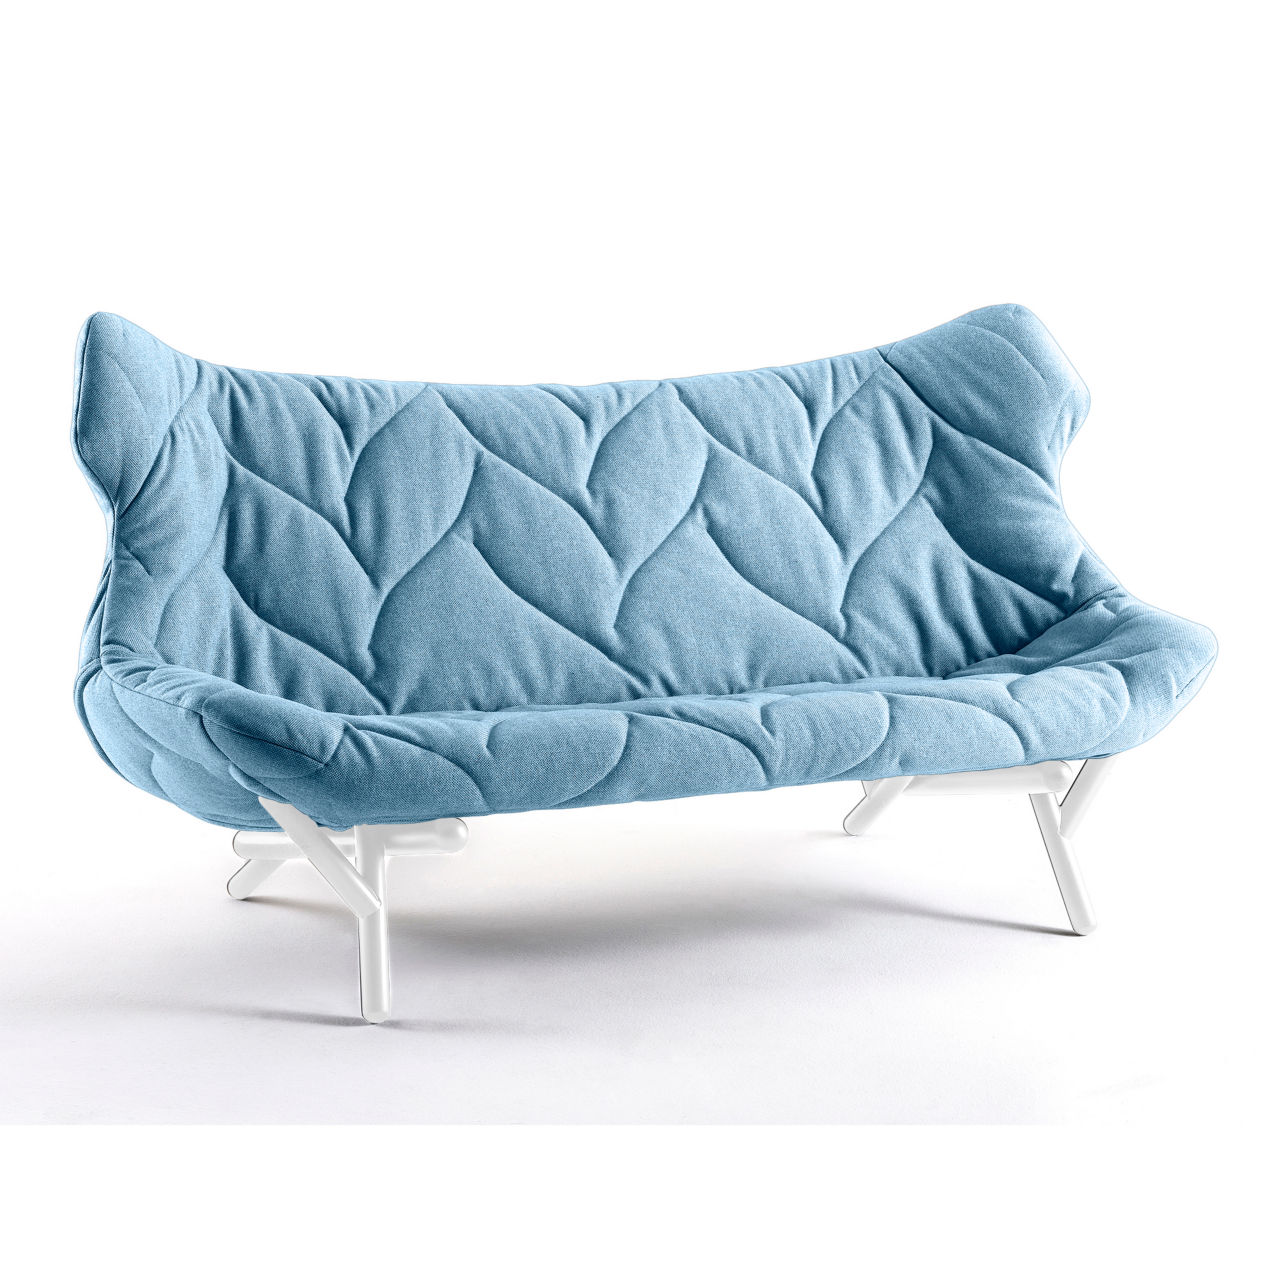 Foliage Sofa in Trevira Blue by Kartell